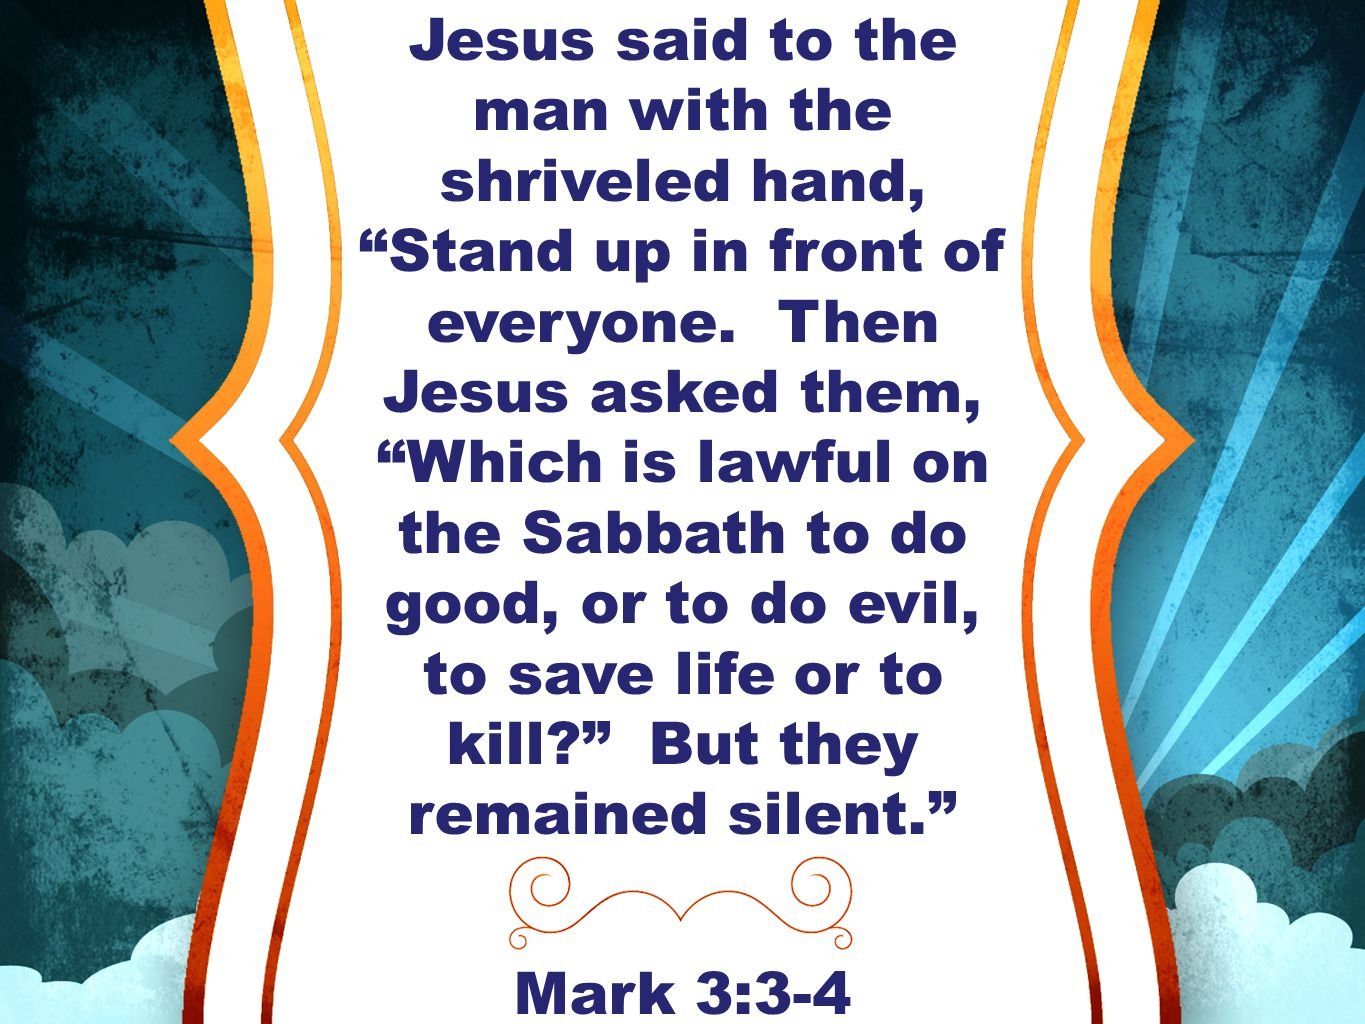 Jesus said to the man with the shriveled hand, Stand up in front of everyone.